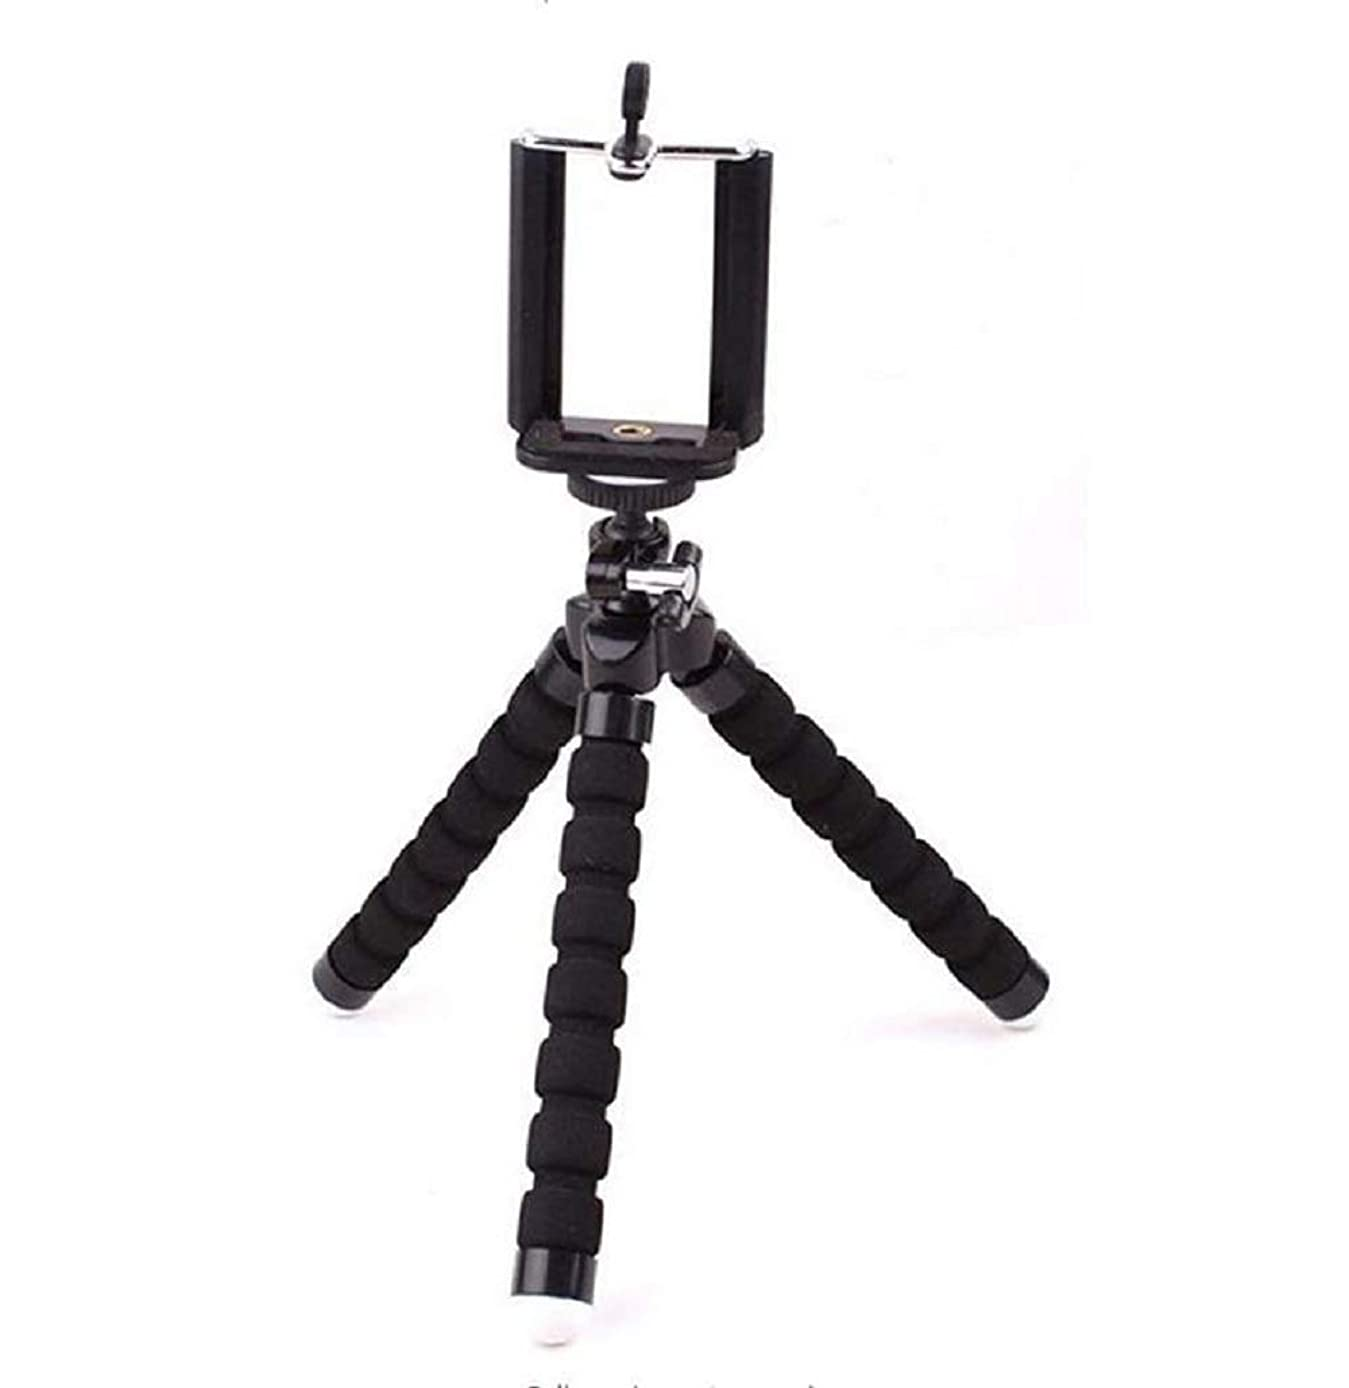 RUSTAM HASHYMOV Phone Tripod,Portable All-in-One Professional, Heavy Duty Aluminum, Lightweight, Bluetooth Remote for Apple & Android Devices, Non Skid Tripod Feet (Black, 2415)